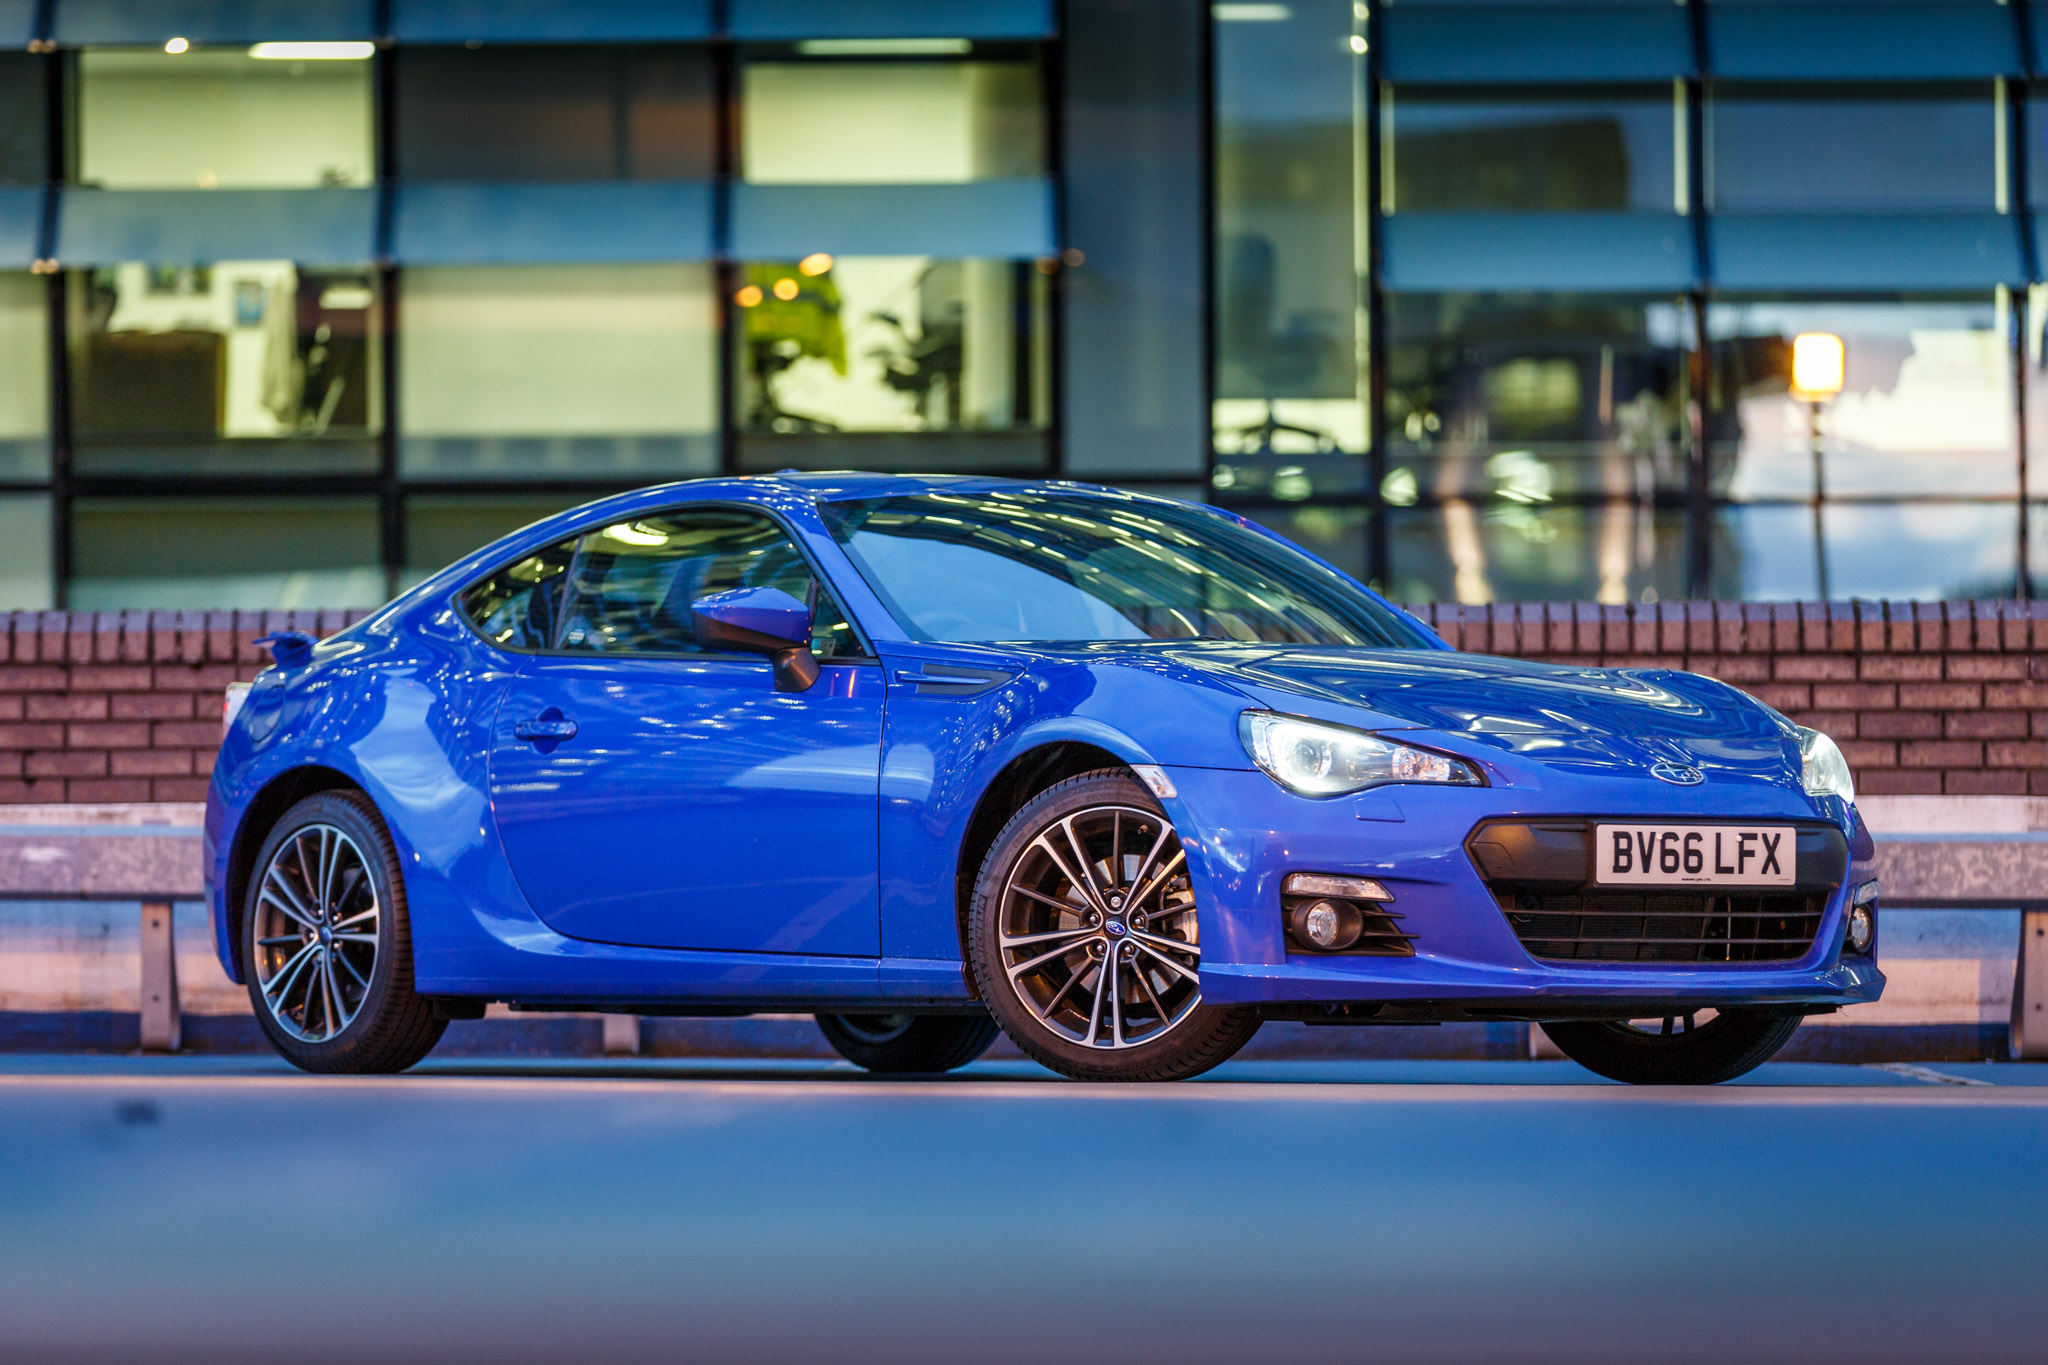 2016 Subaru BRZ 2.0i SE Review